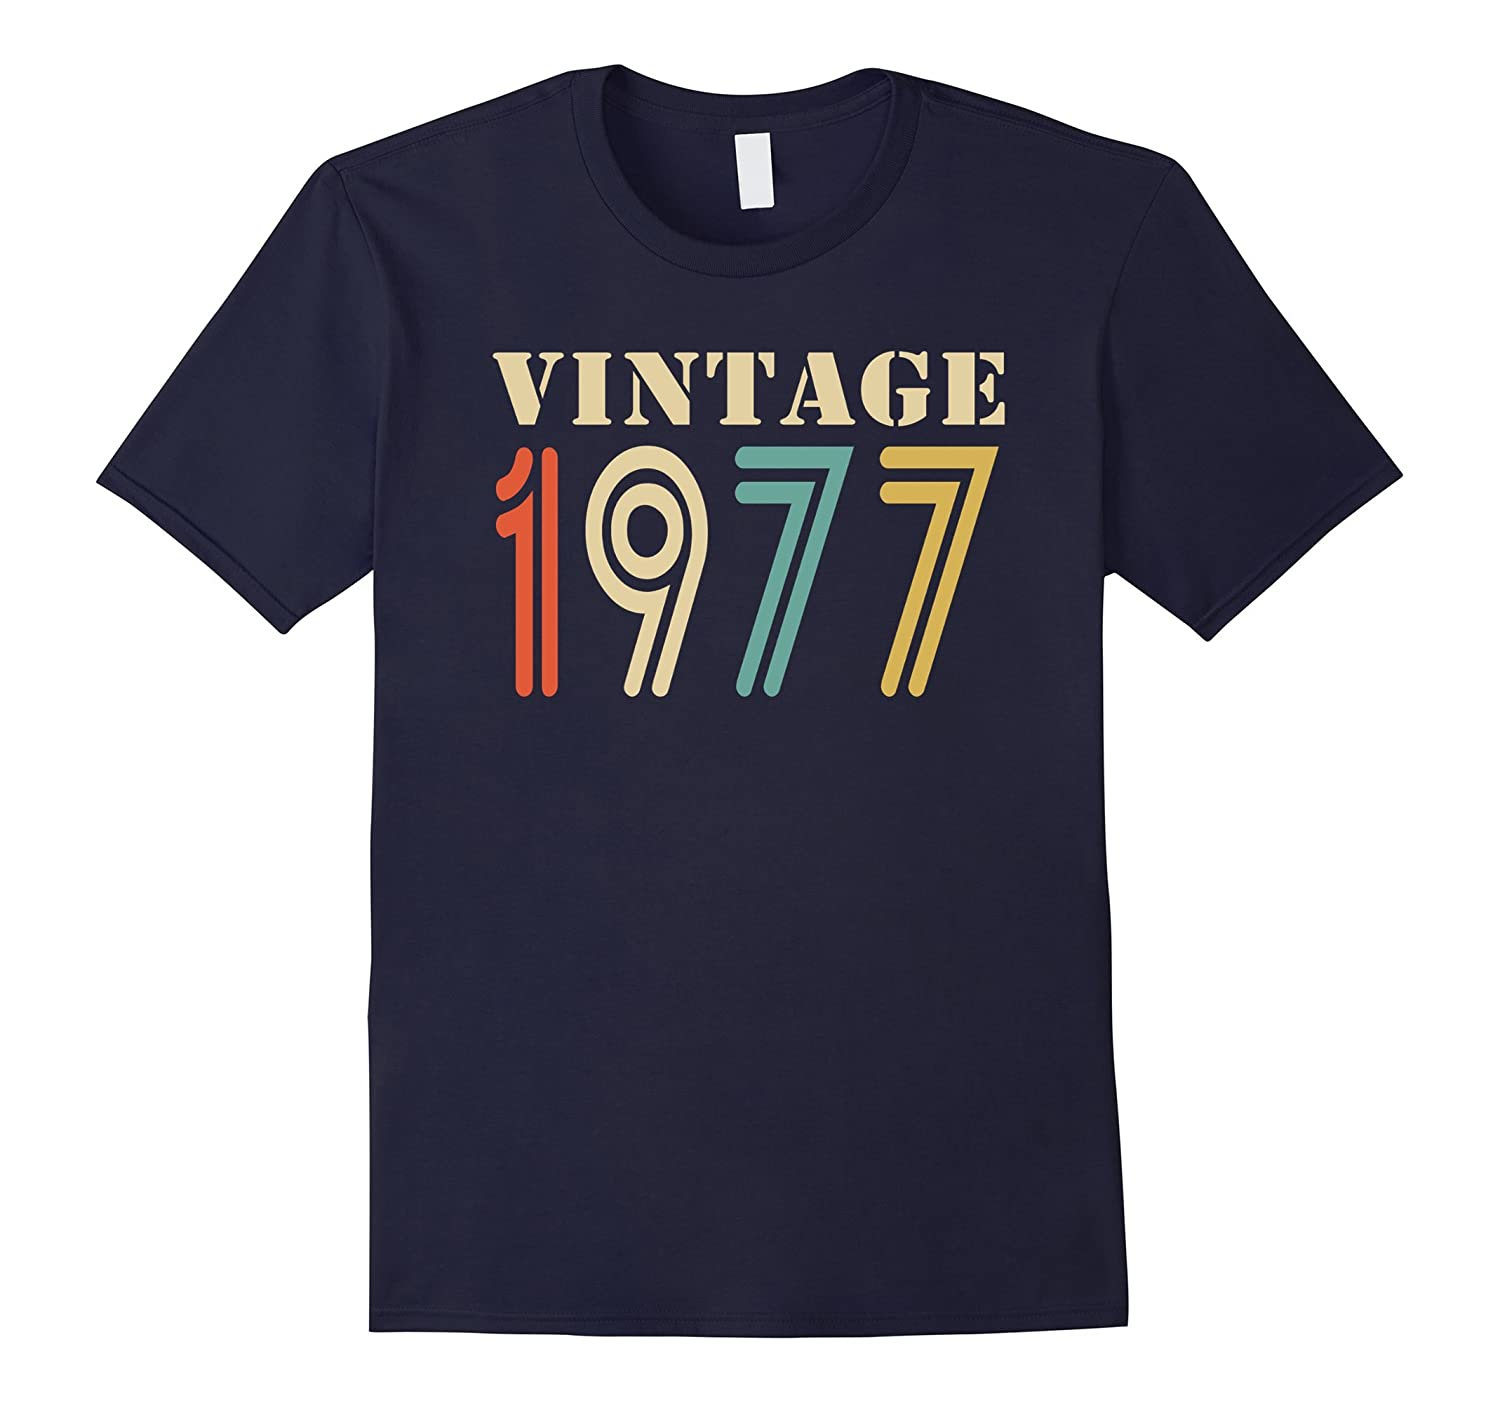 Vintage 1977 - 40th birthday gift shirt-BN